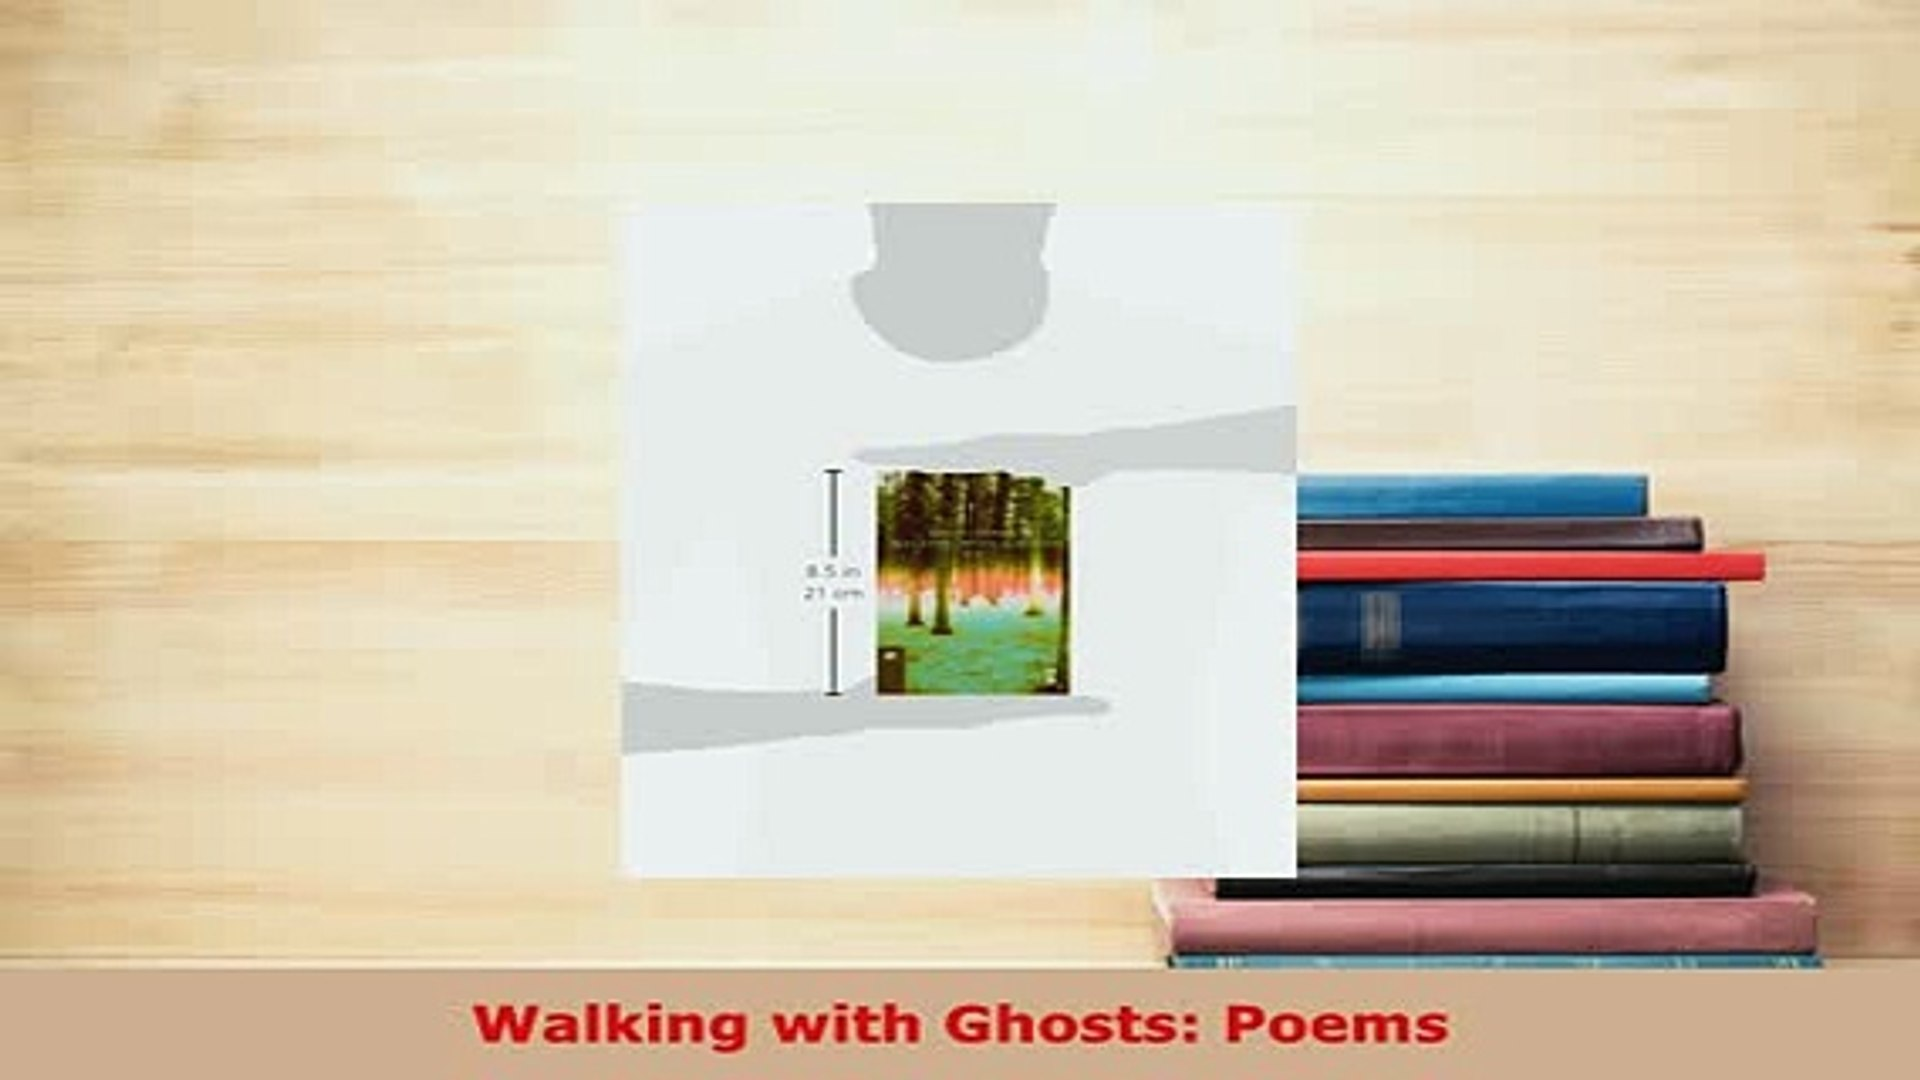 Walking with Ghosts Poems